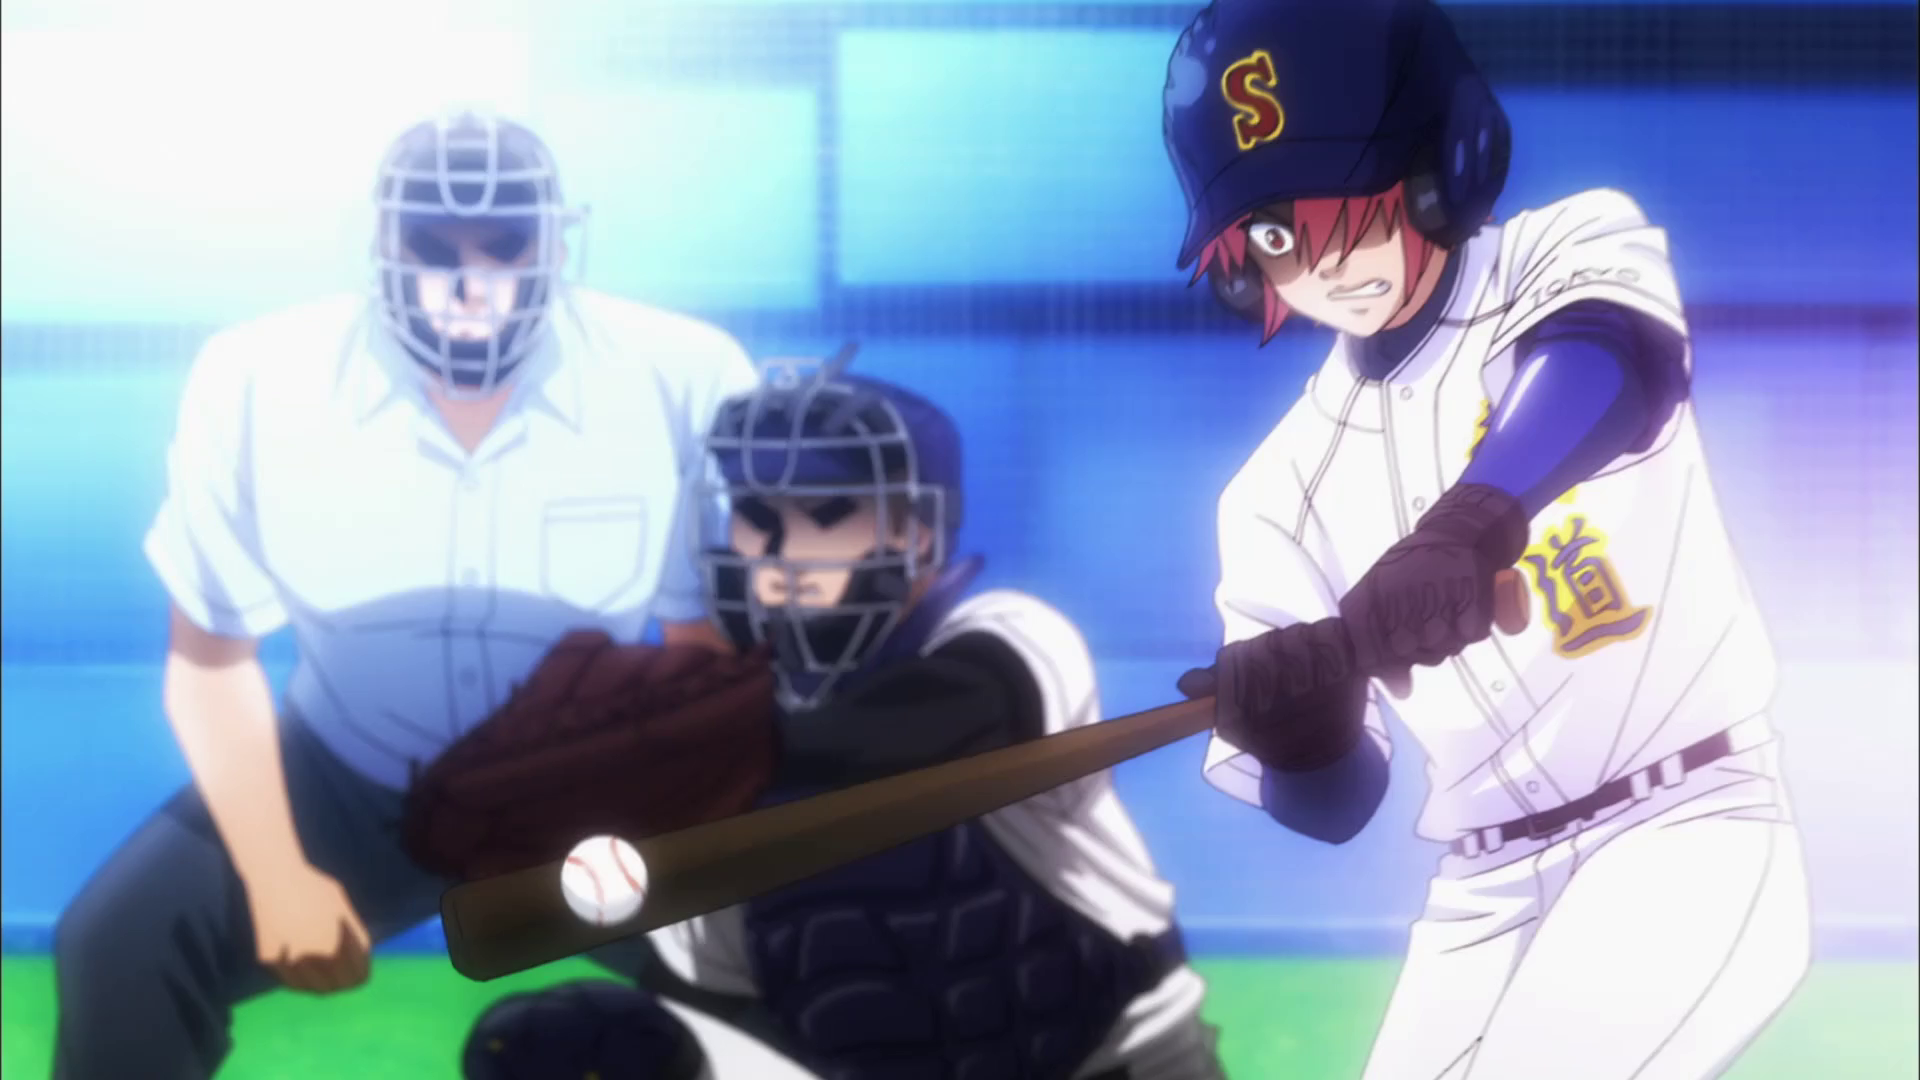 Ace Of Diamond Wallpapers Anime Hq Ace Of Diamond Pictures 4k